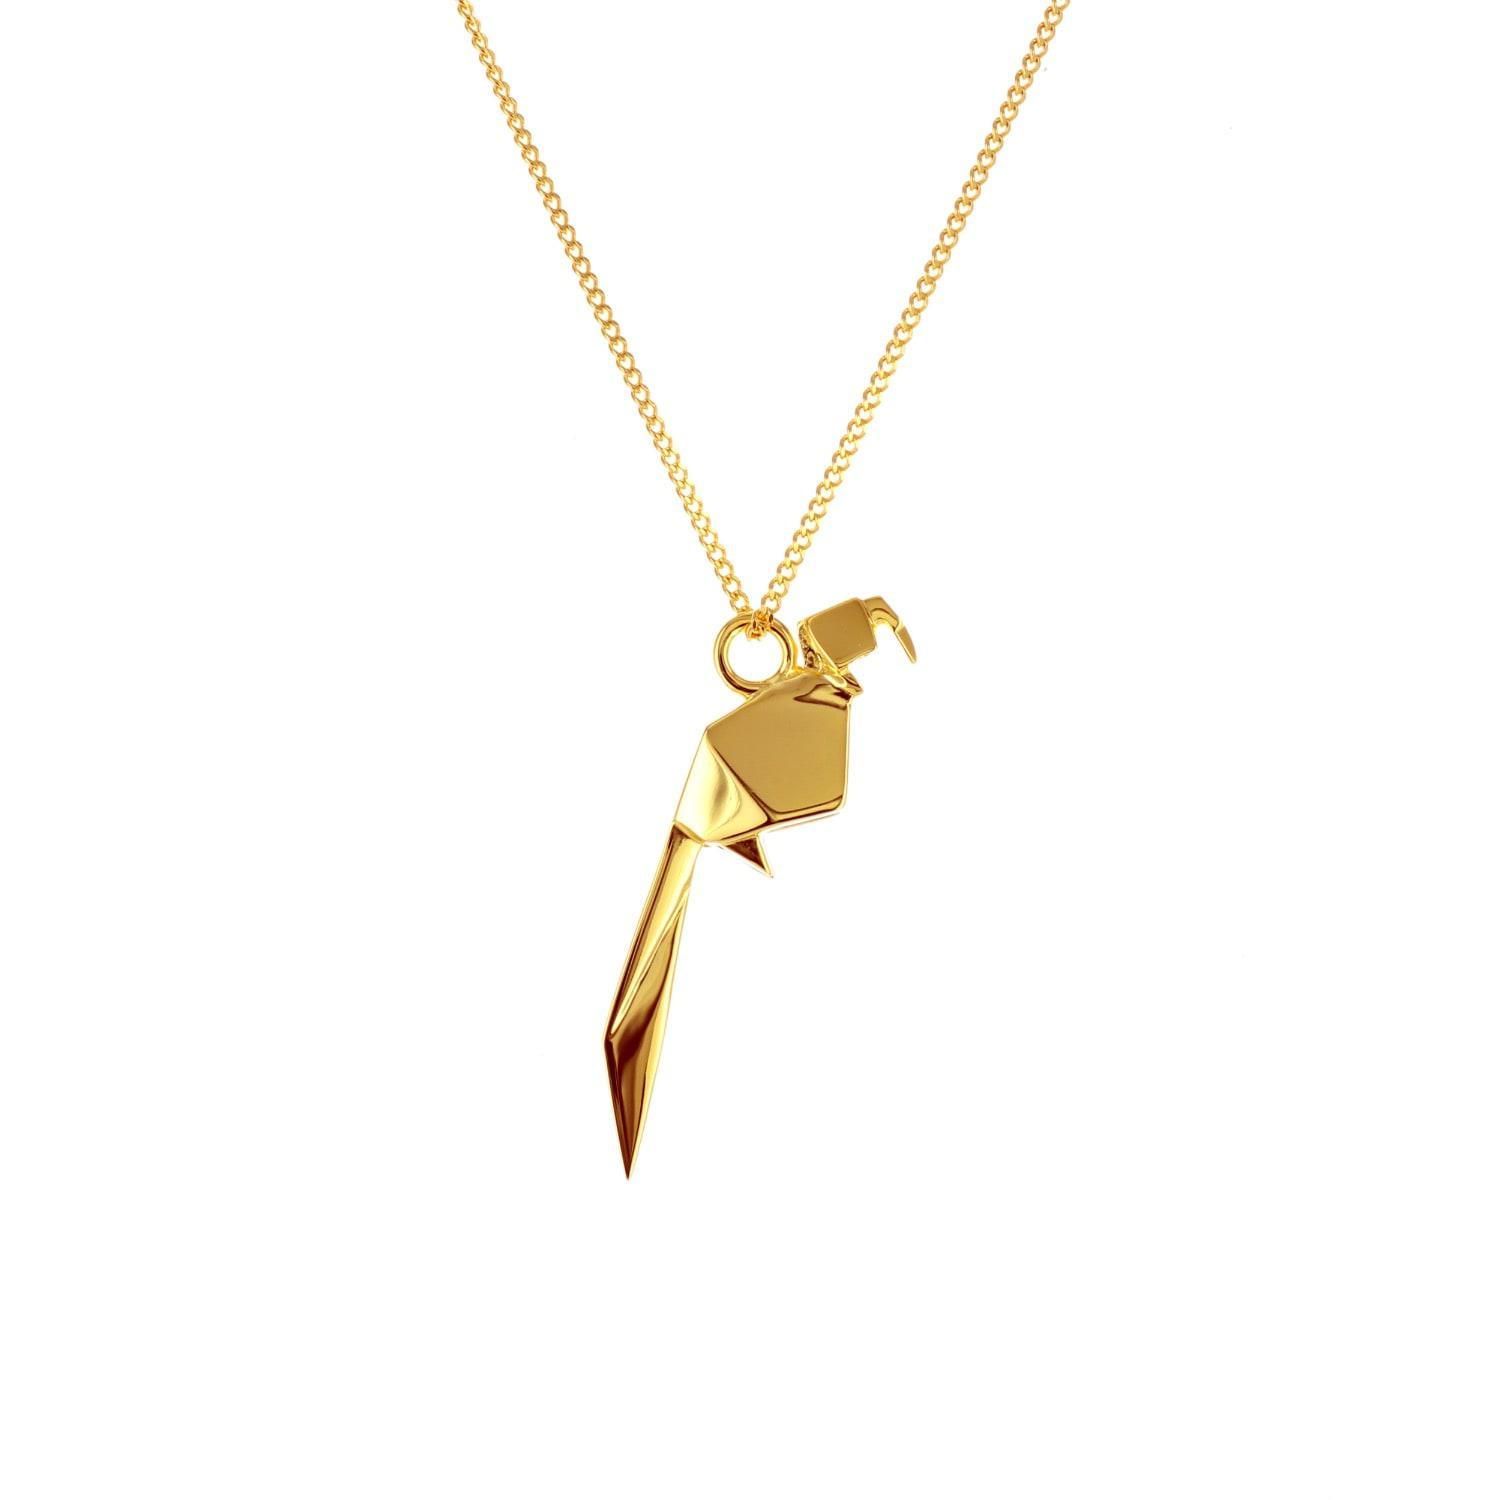 Origami Jewellery Sterling Silver Mini Parrot Origami Necklace ADBbcm